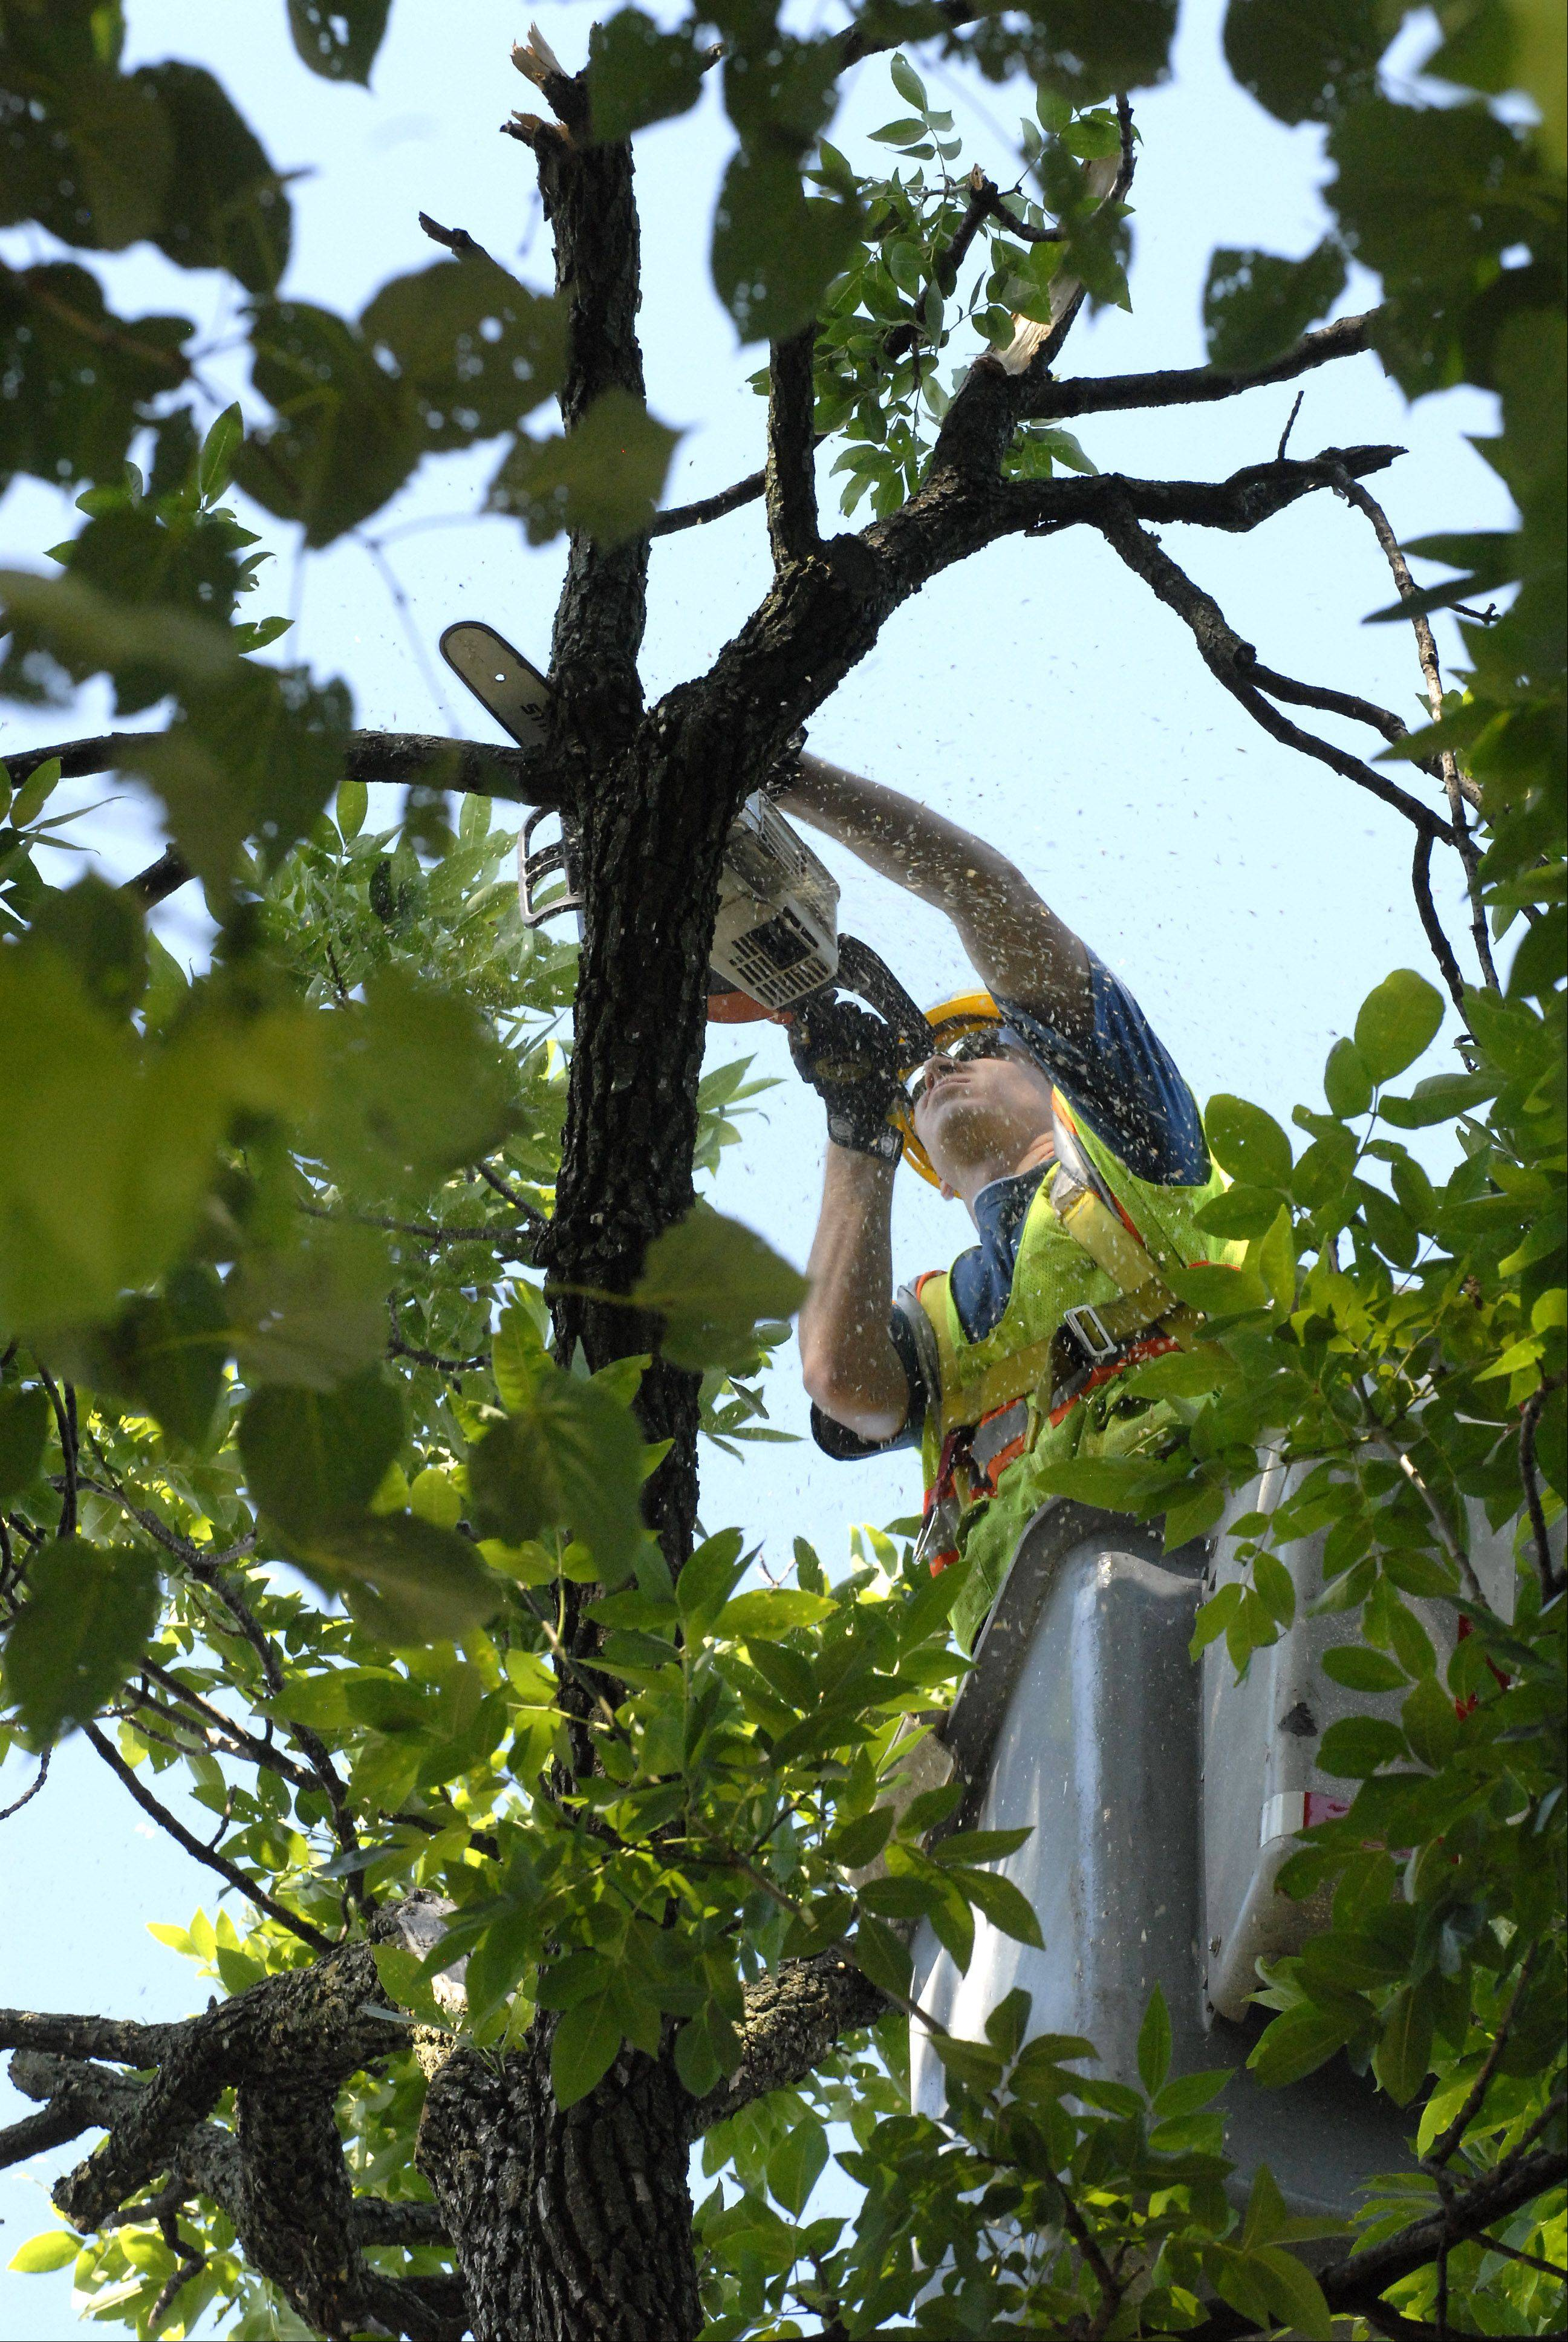 Forestry crew member Seth Westberg saws off a broken limb Tuesday morning on Busse Avenue just east of Maple Street in Mount Prospect. Though Monday's storm downed trees and limbs, damage was minimal compared to what was left after a tornado hit town last month.